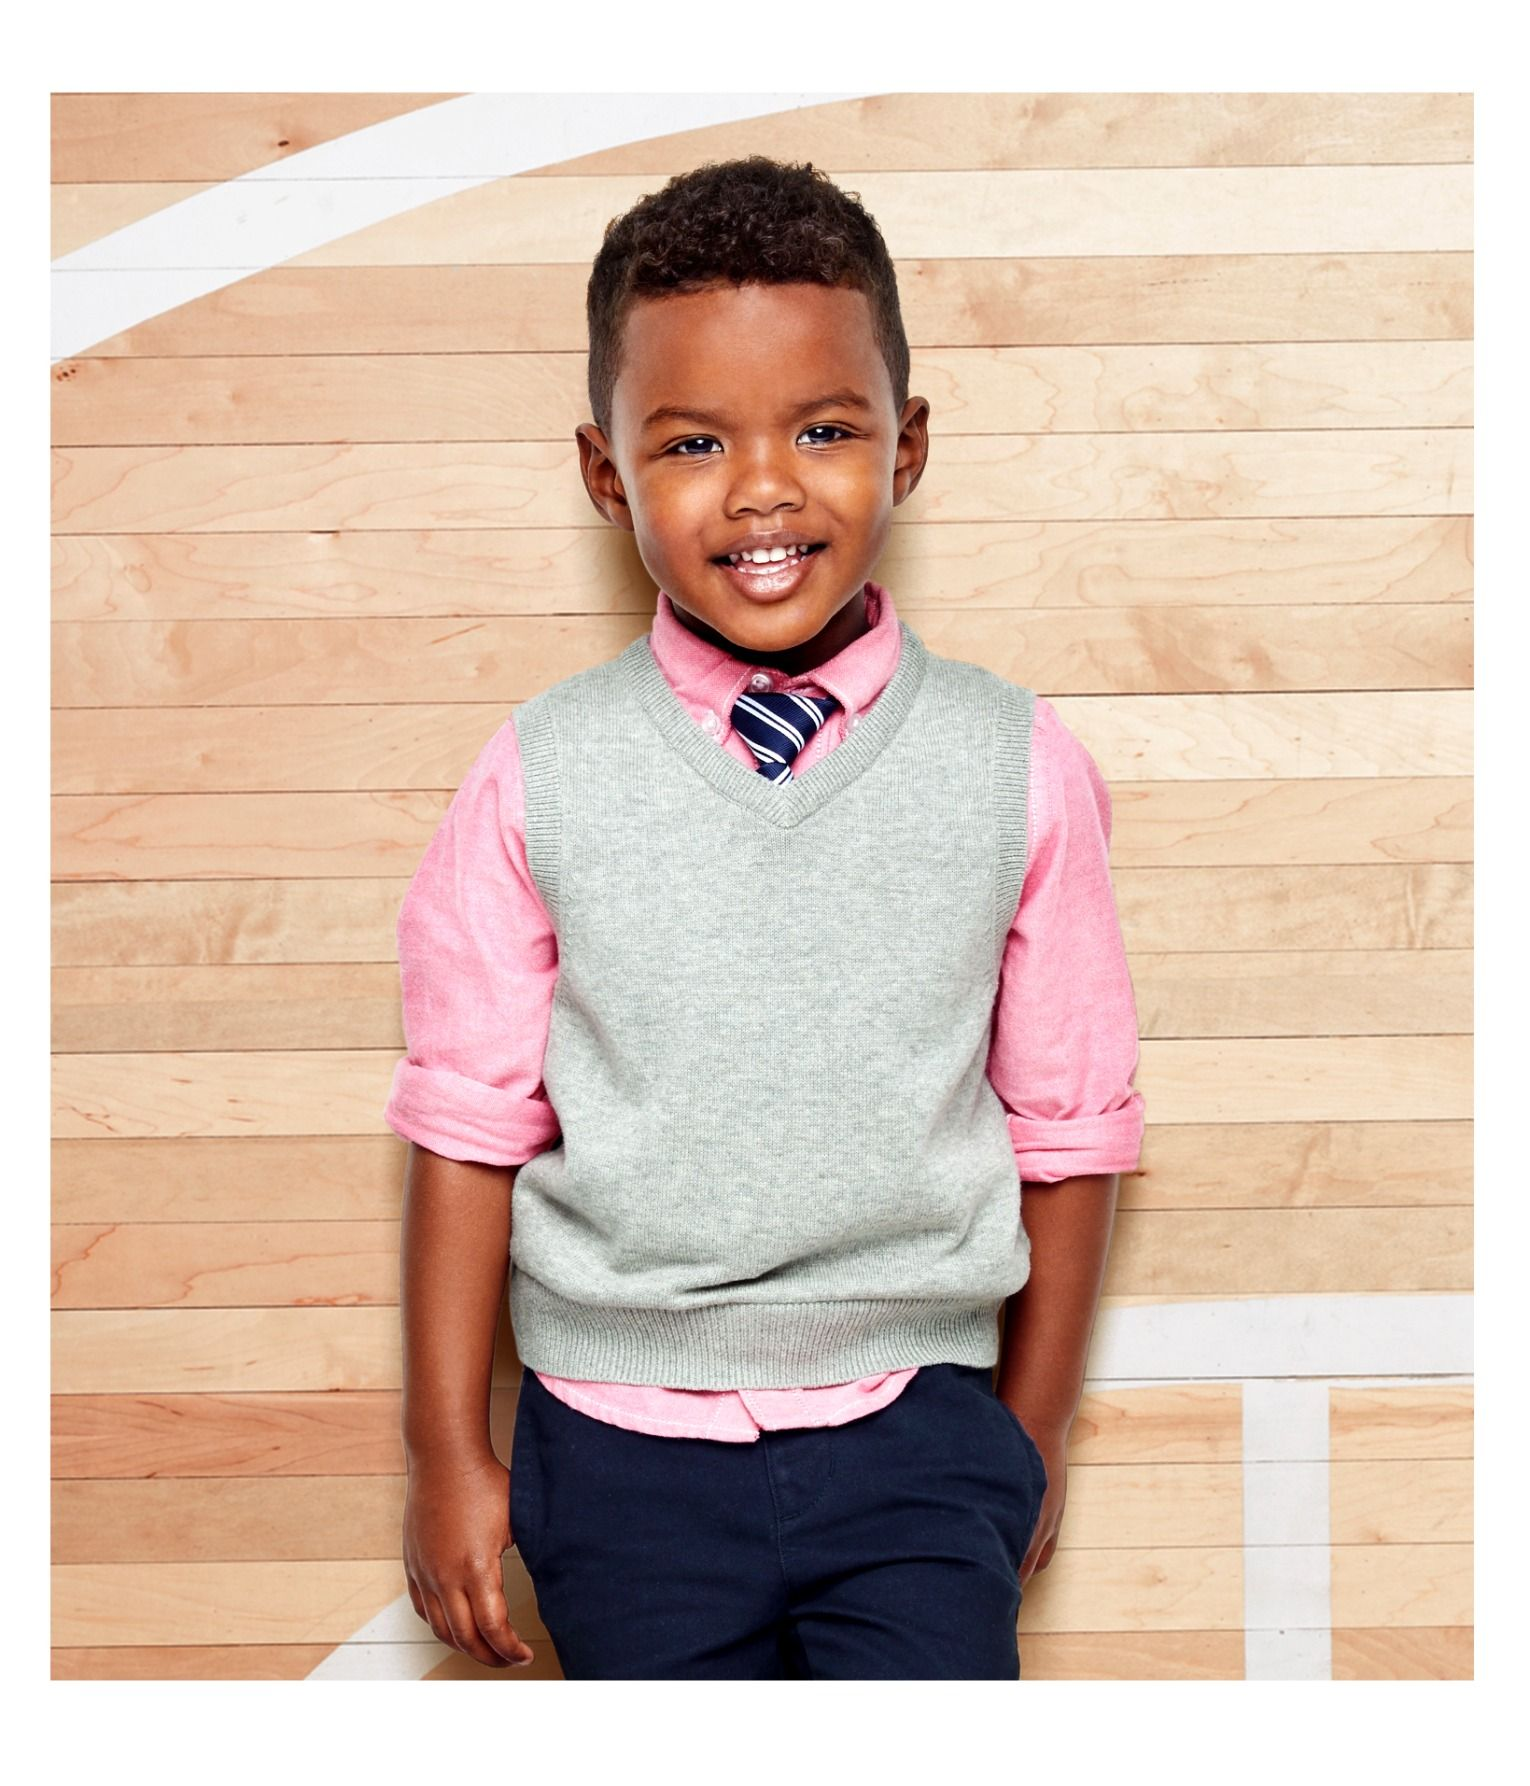 97c875ff0 Kids Clothing Consignment BabyBoyFashionTrends